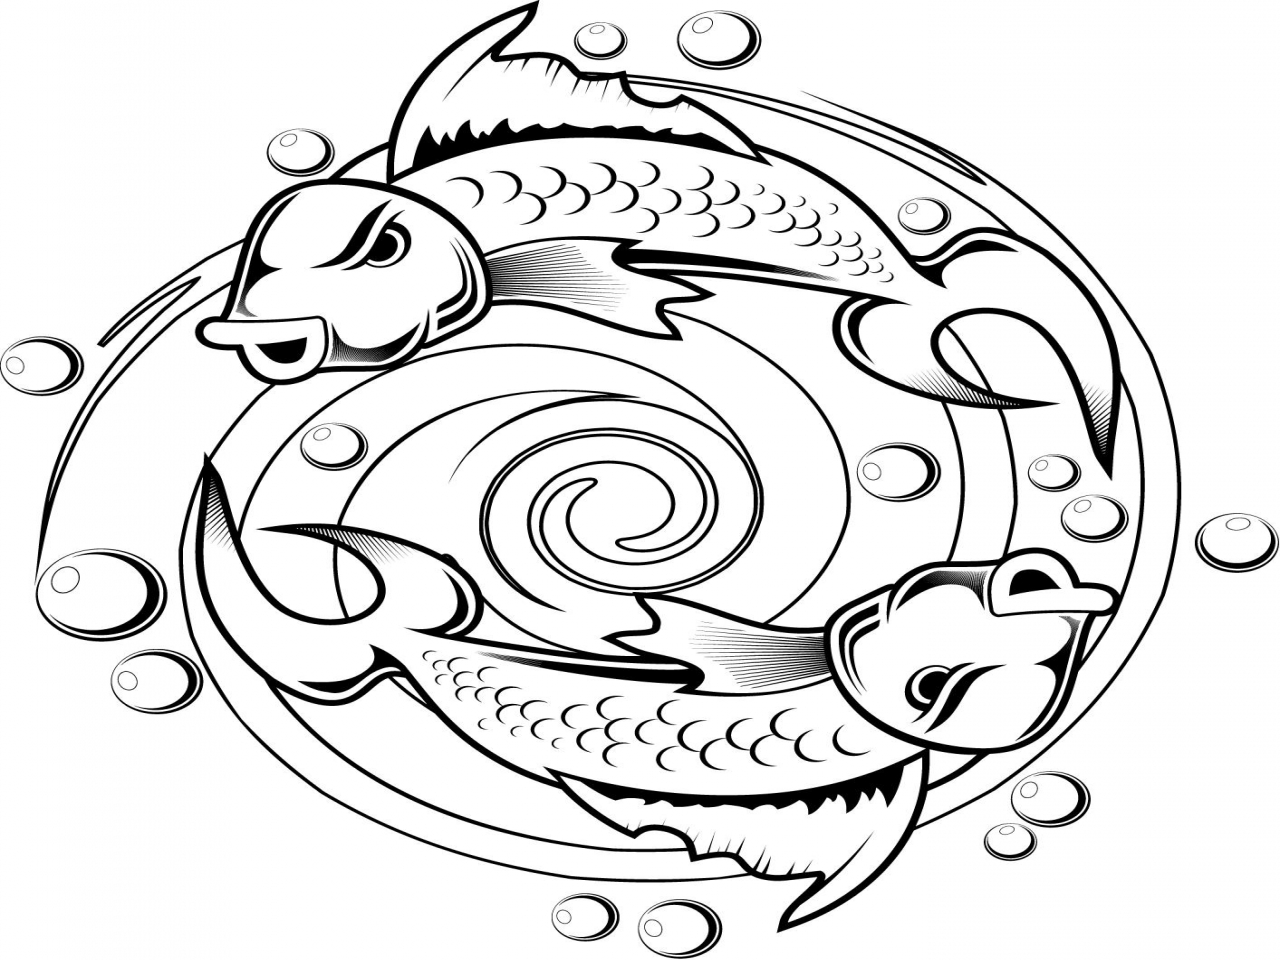 Body Art: Tattoo Designs Coloring Book | Abstract coloring pages ... | 960x1280